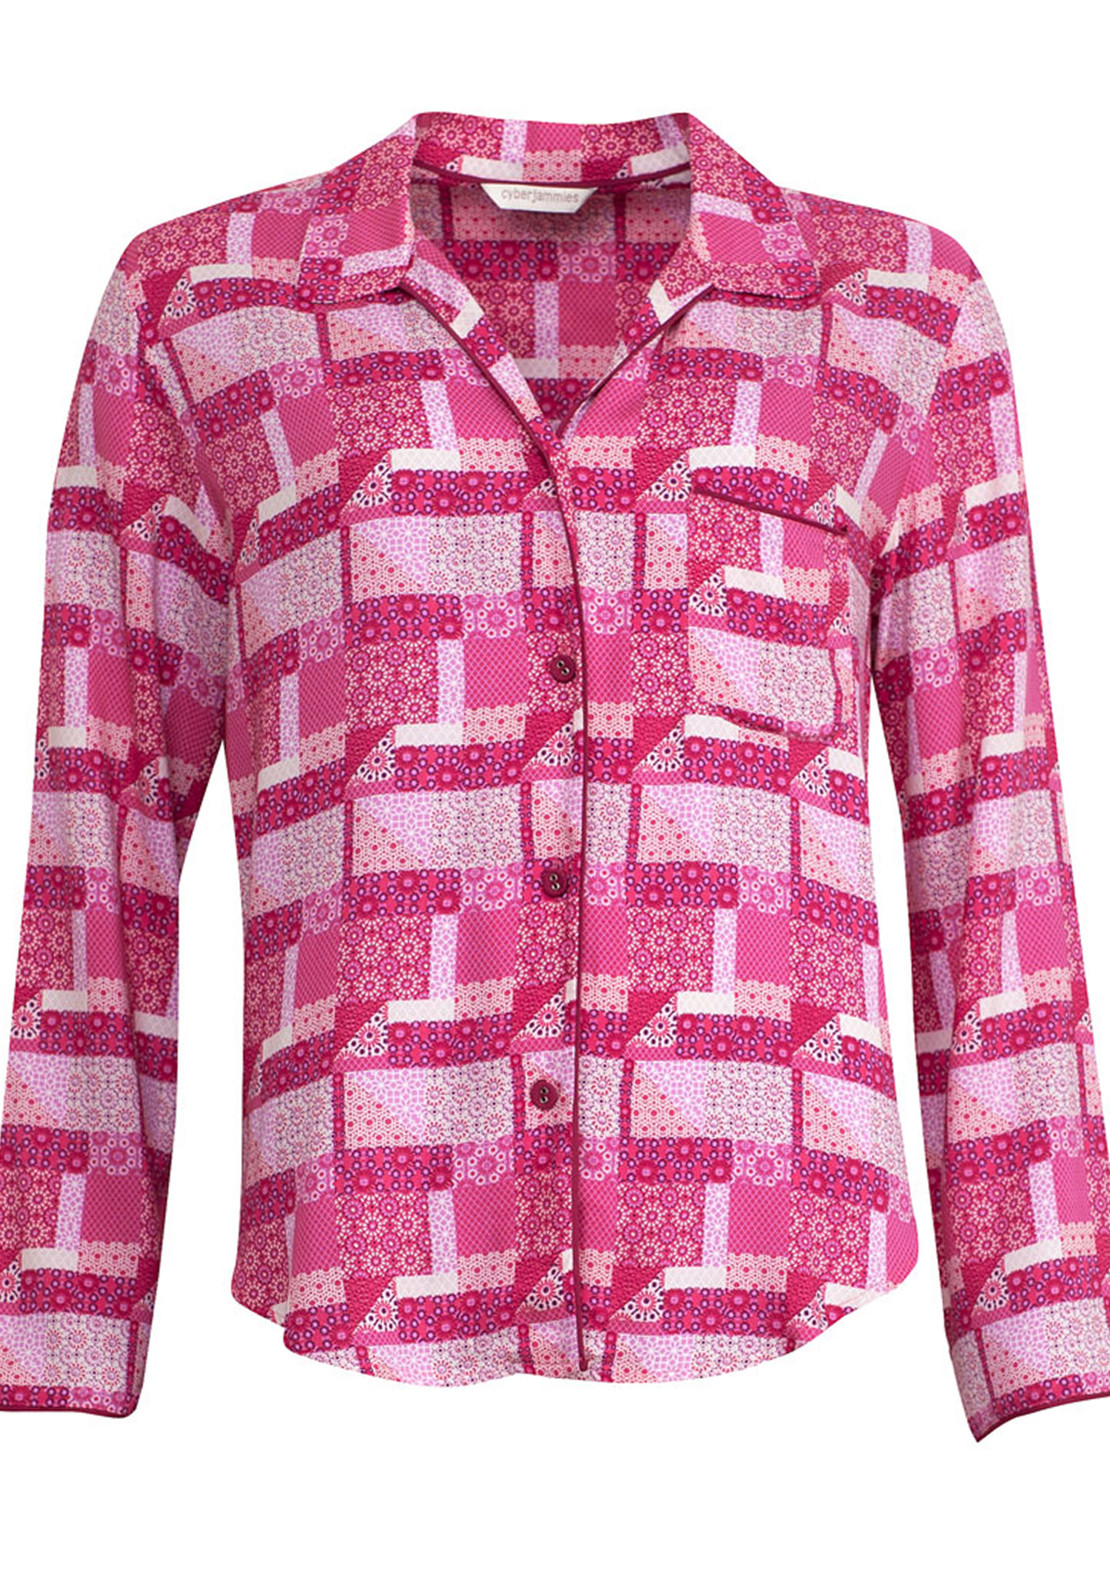 Cyberjammies Pretty in Pink Patchwork Print Pyjama Top, Pink